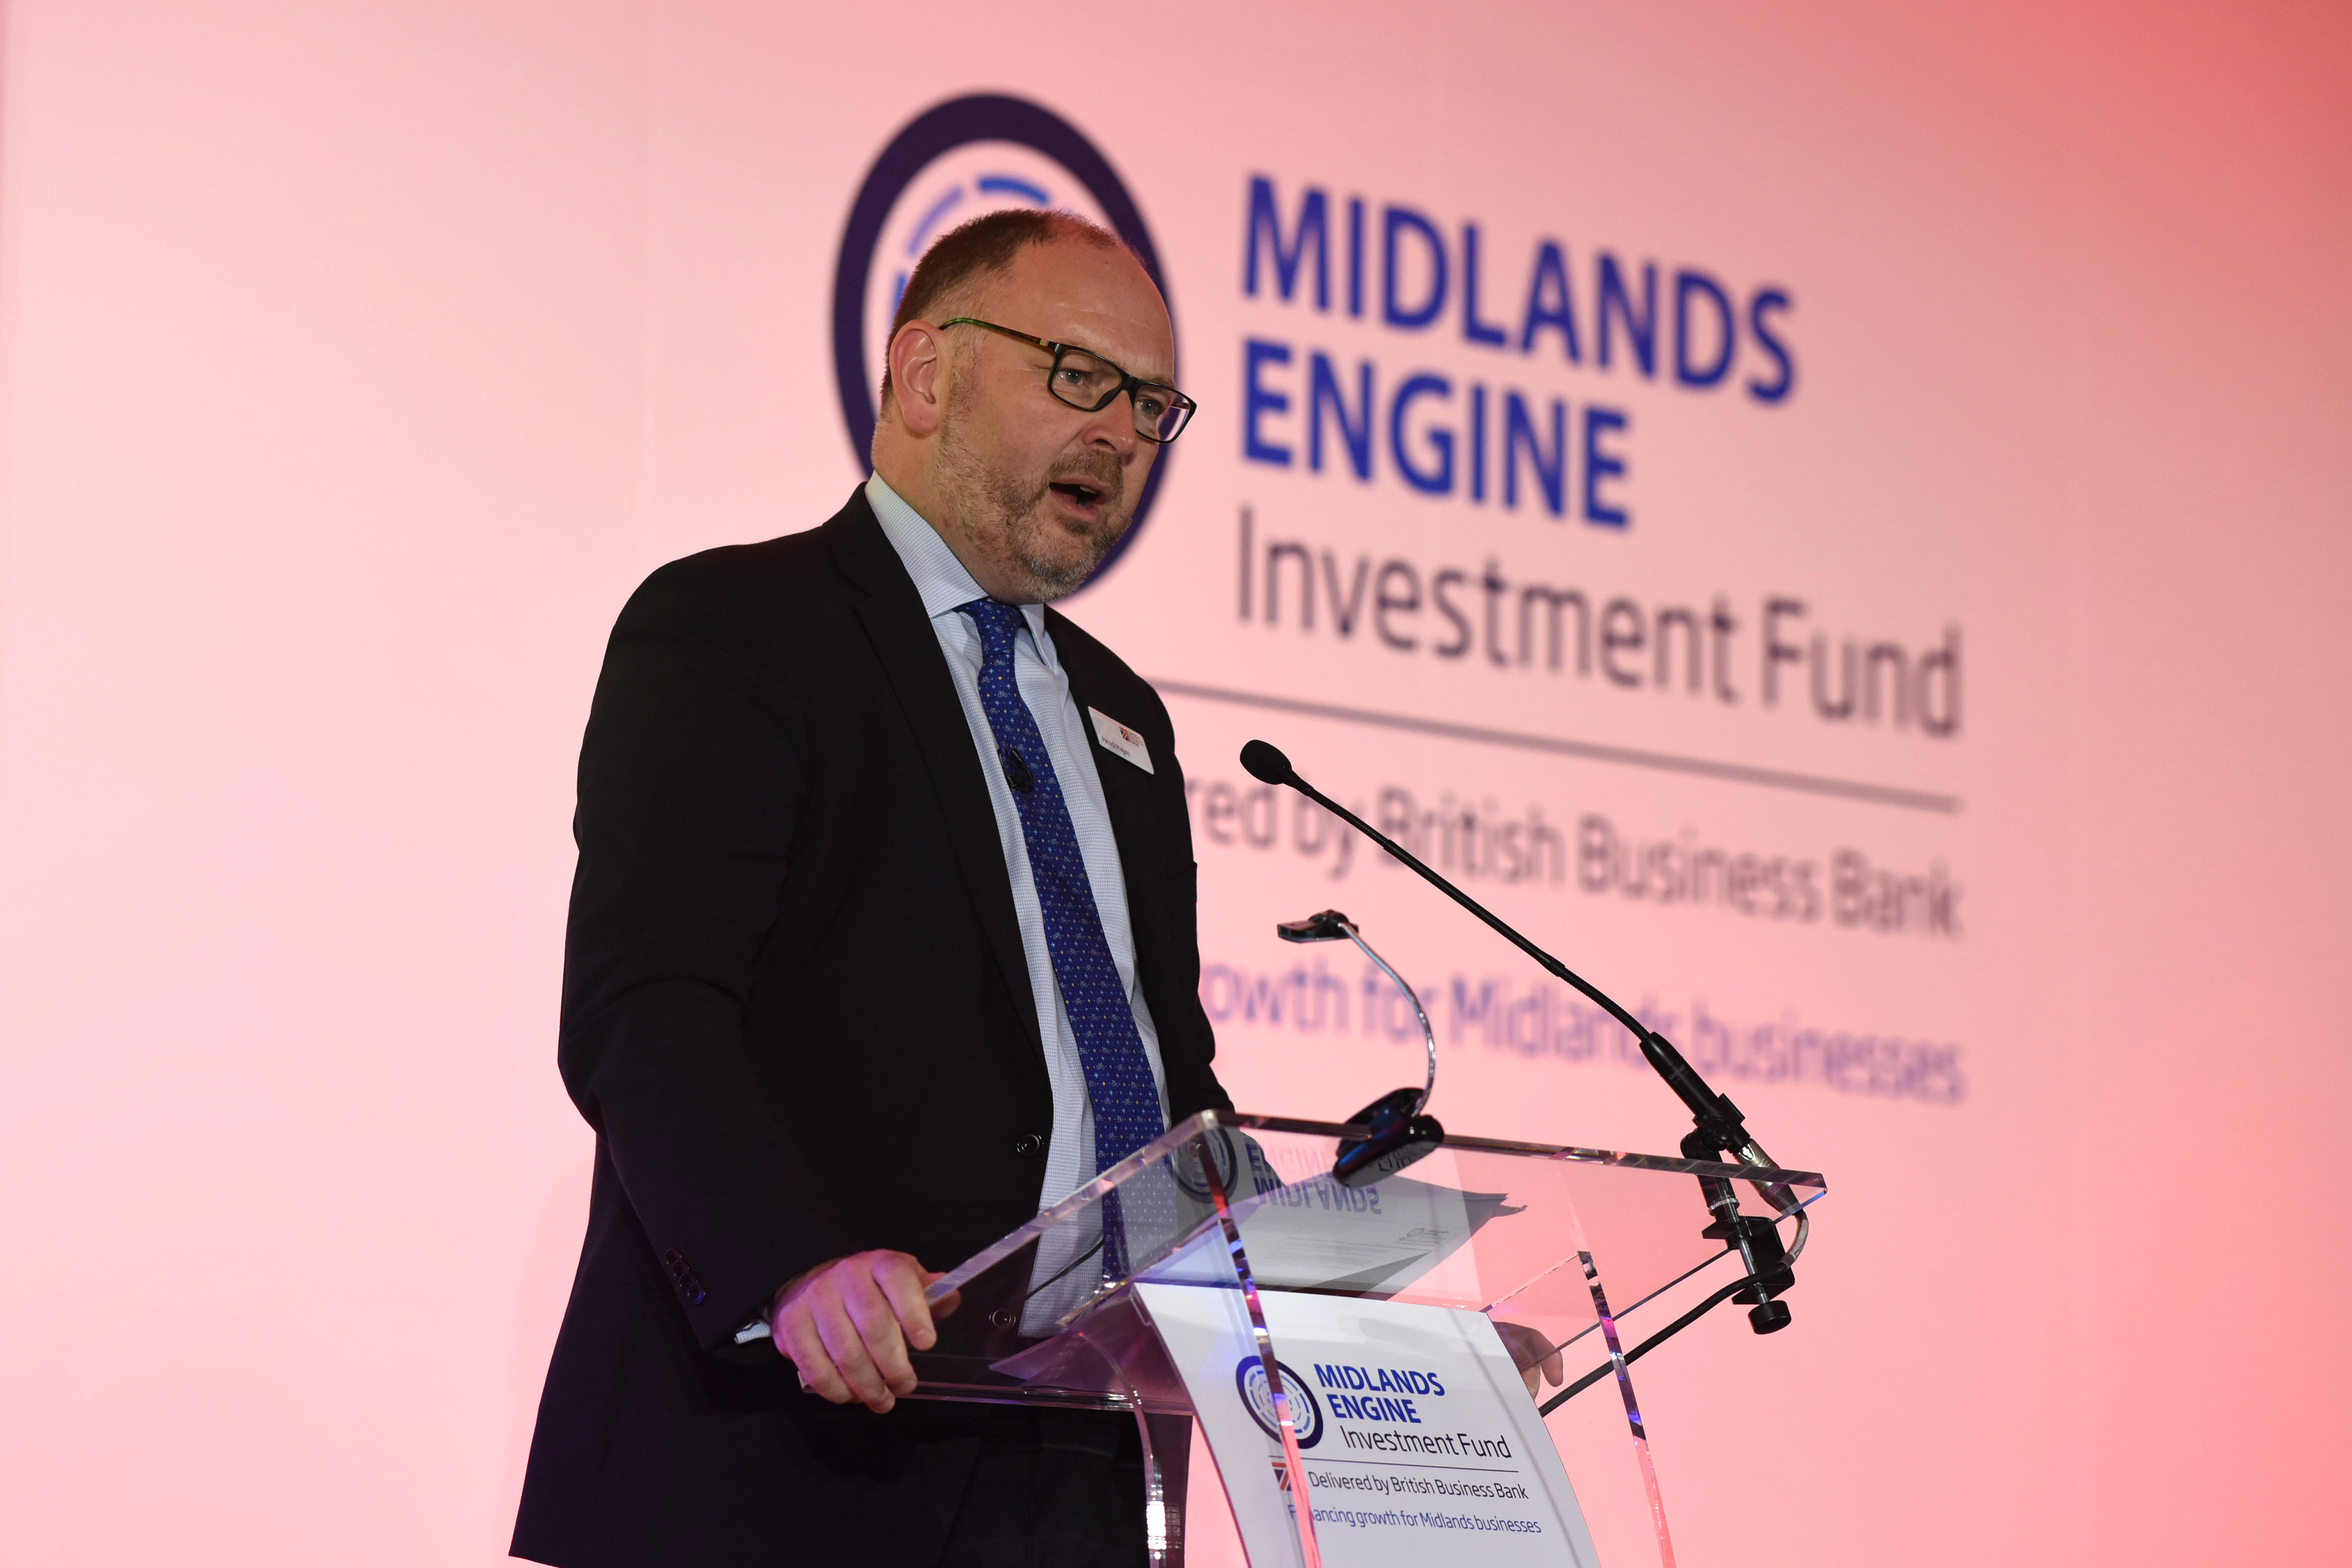 MEIF invests £100 million into Midlands' businesses